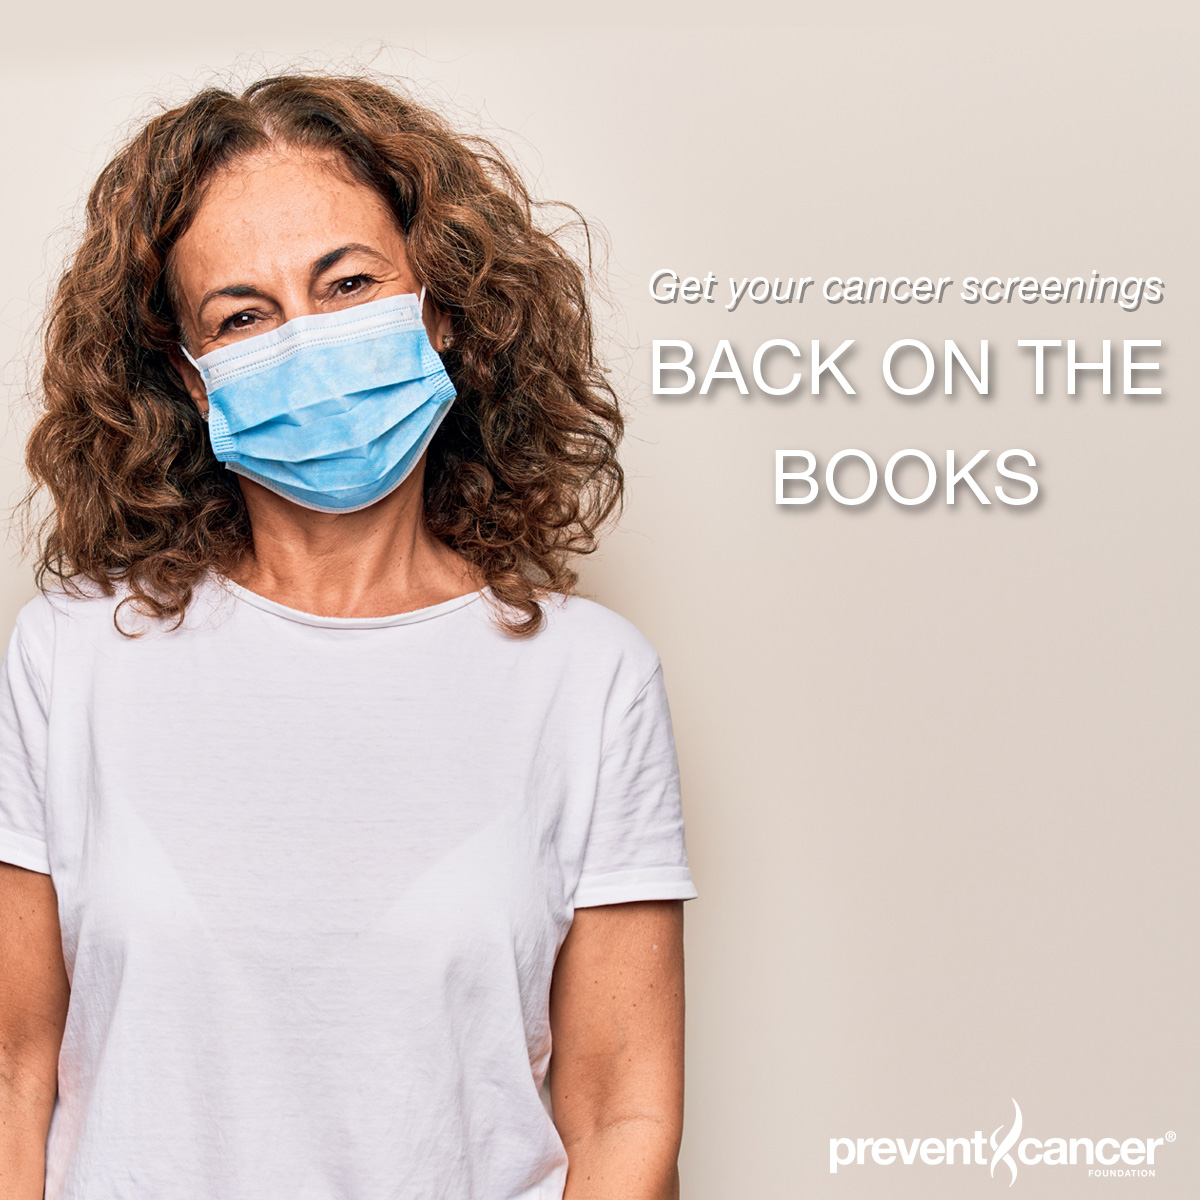 Why It's Important to Get Your Cancer Screenings Back on the Books